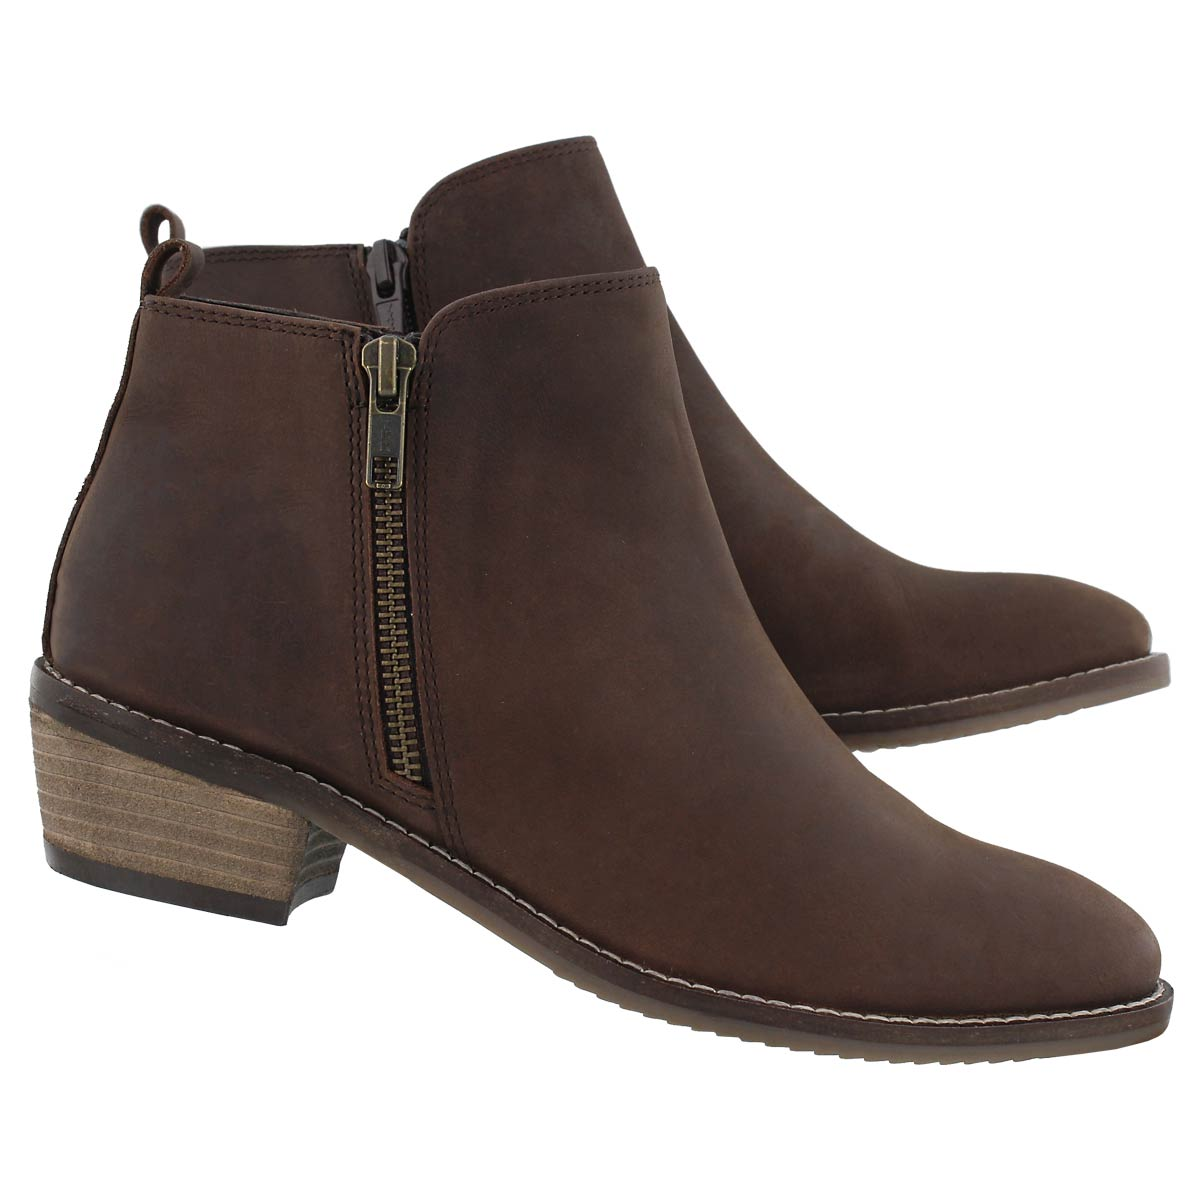 Lds Darcy brown side zip bootie